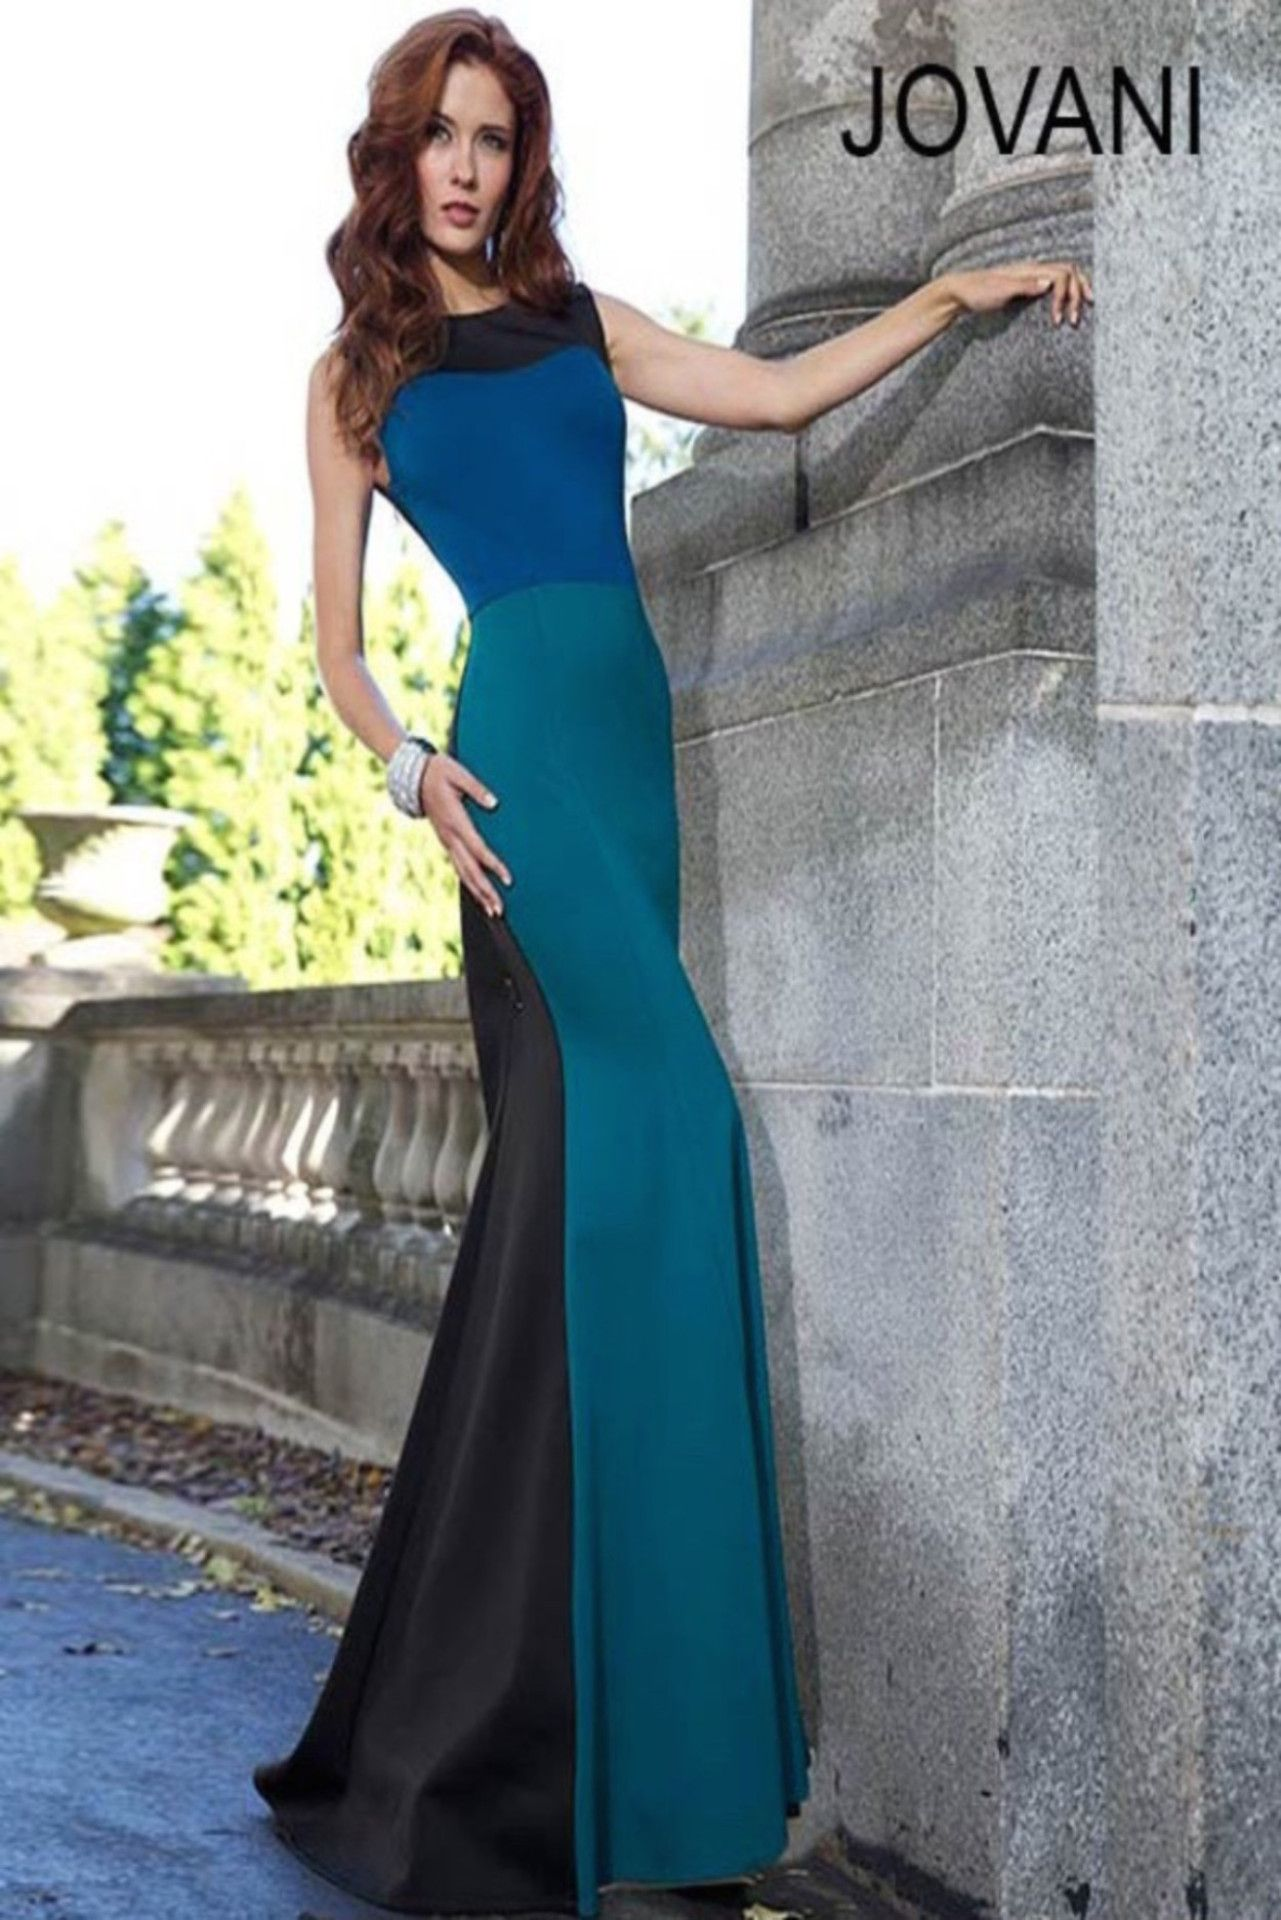 Jovani 93512 Blue and Black Colorblock Gown is now available on ...